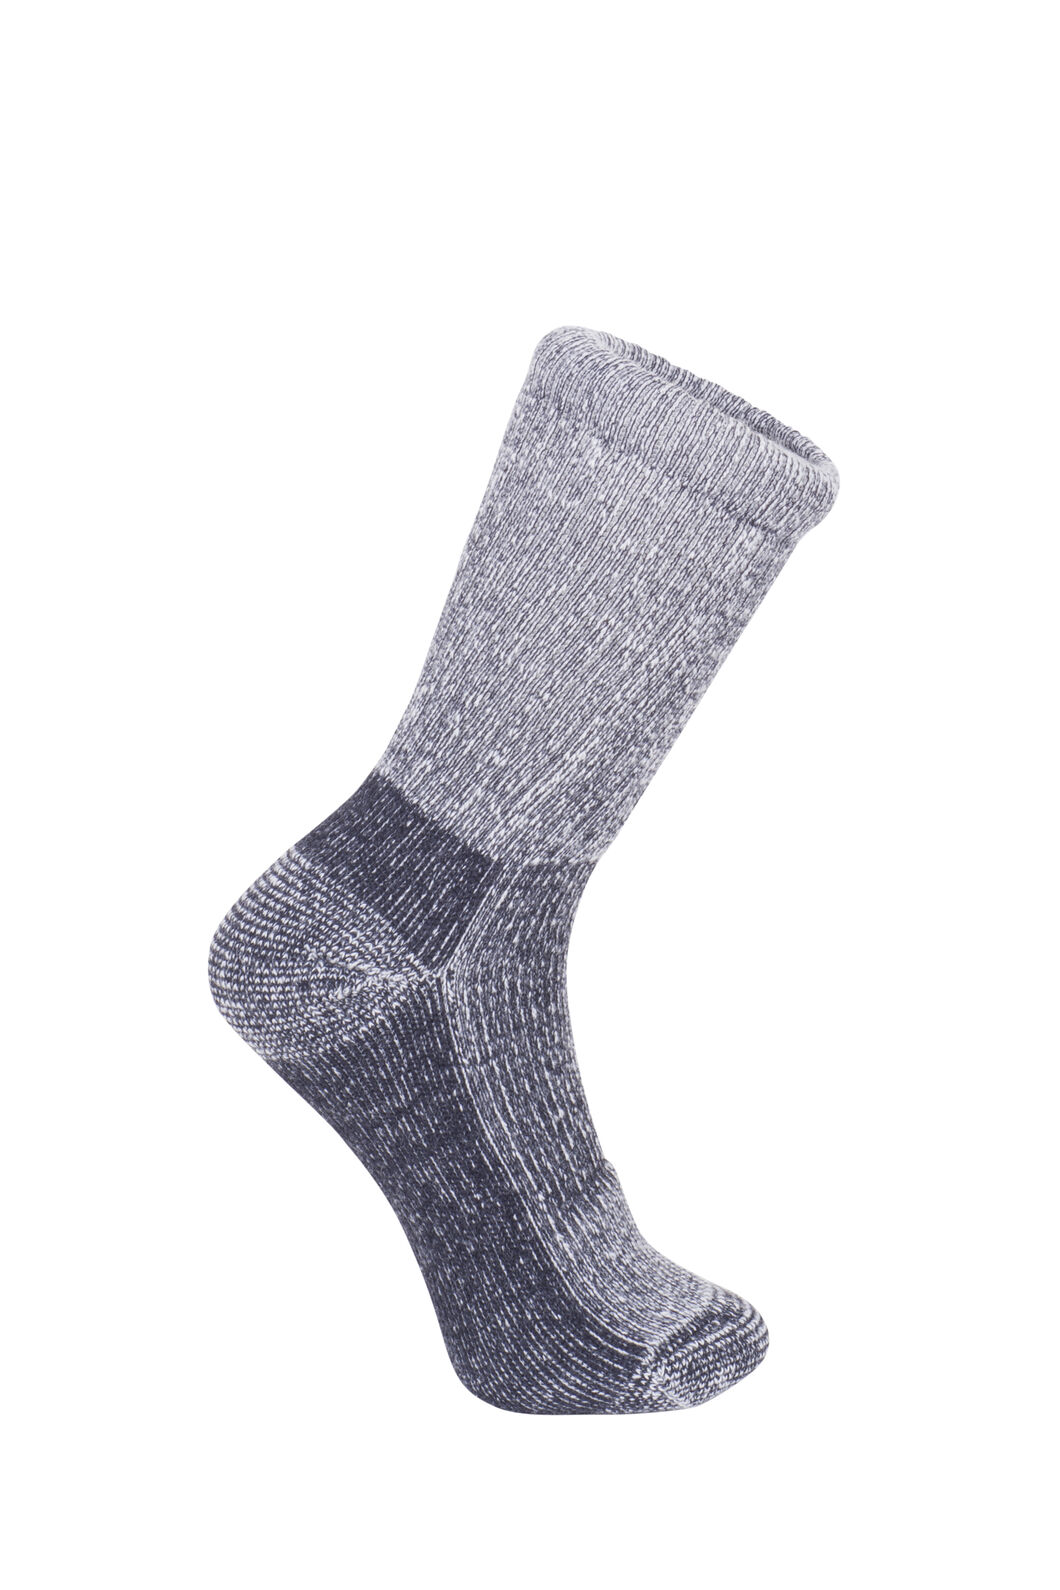 Macpac Winter Hiker Socks - Kids', Black, hi-res